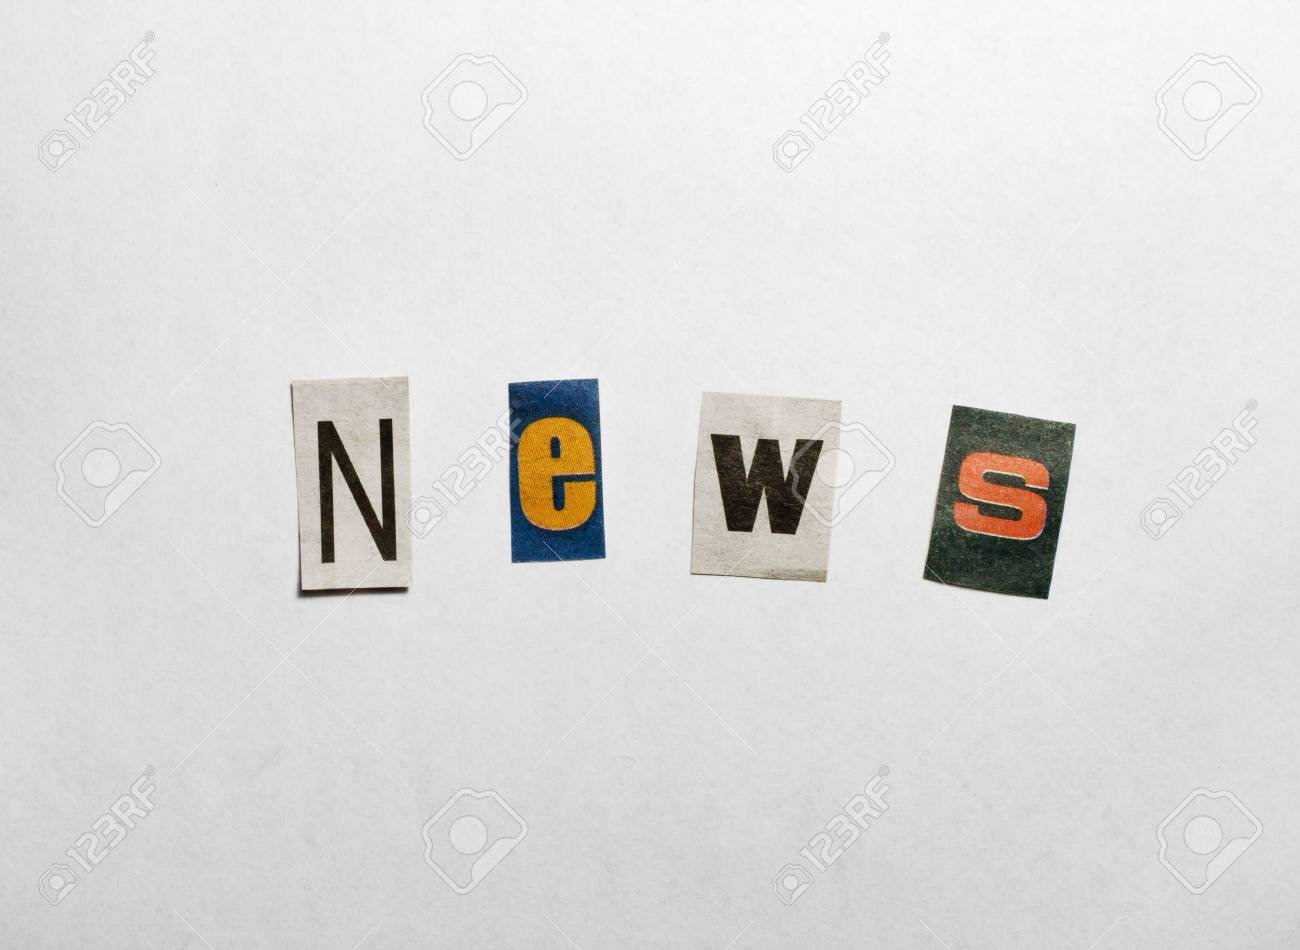 News letters concept Stock Photo - 13739321